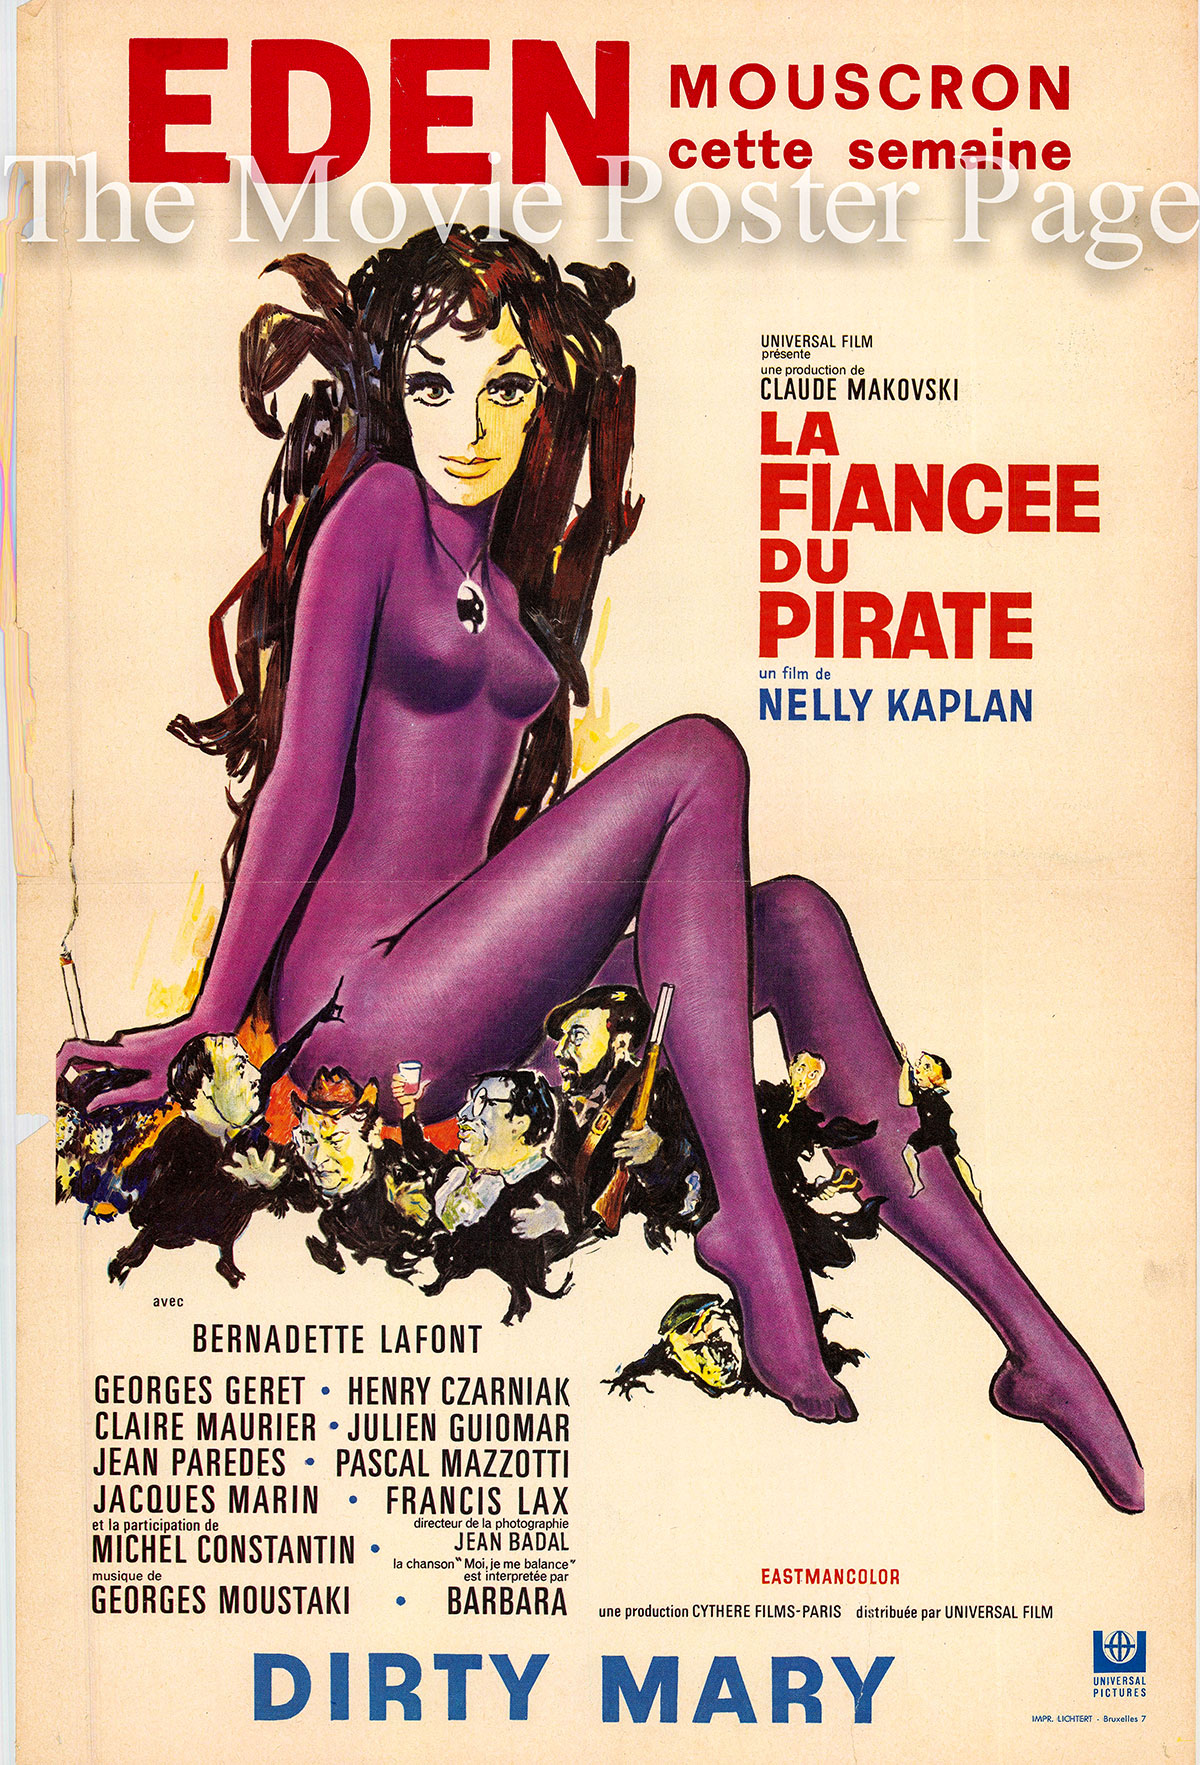 Pictured is a Belgian poster for the 1969 Nelly Kaplan film Dirty Mary starring Bernadette Lafont.